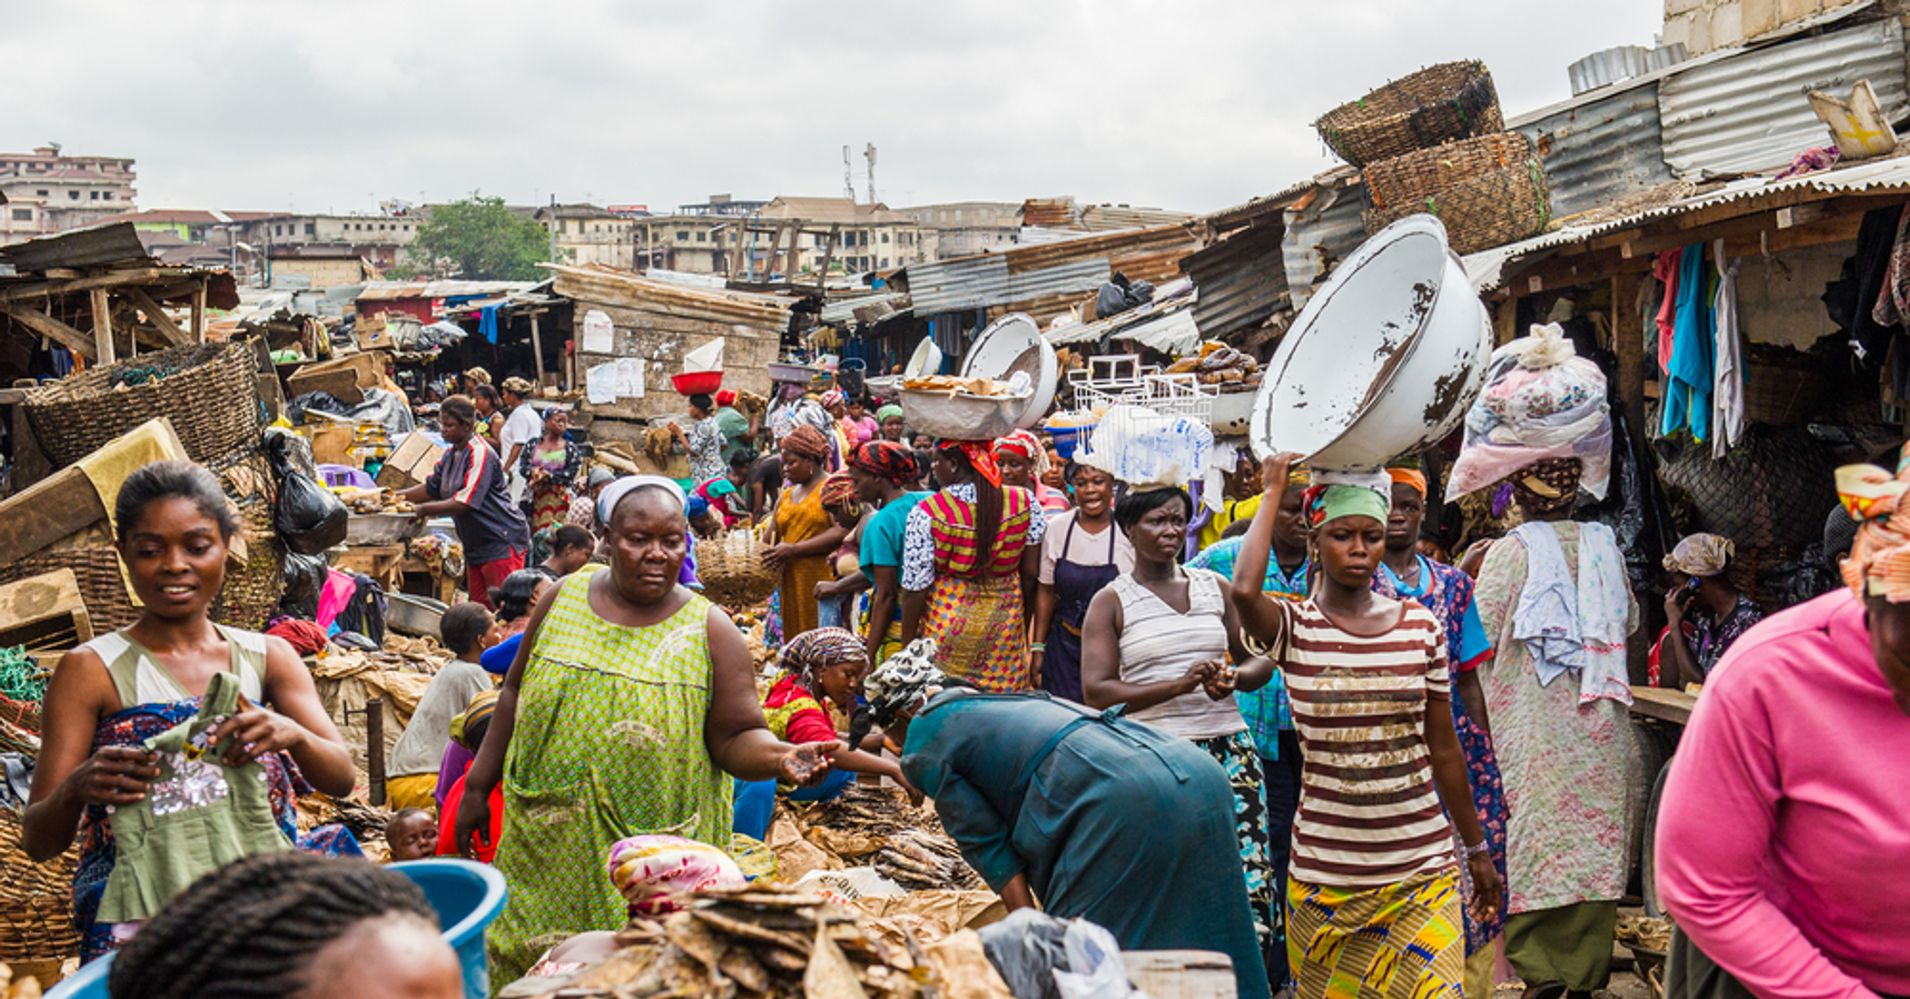 the daily struggles with hunger and poverty in ghana africa